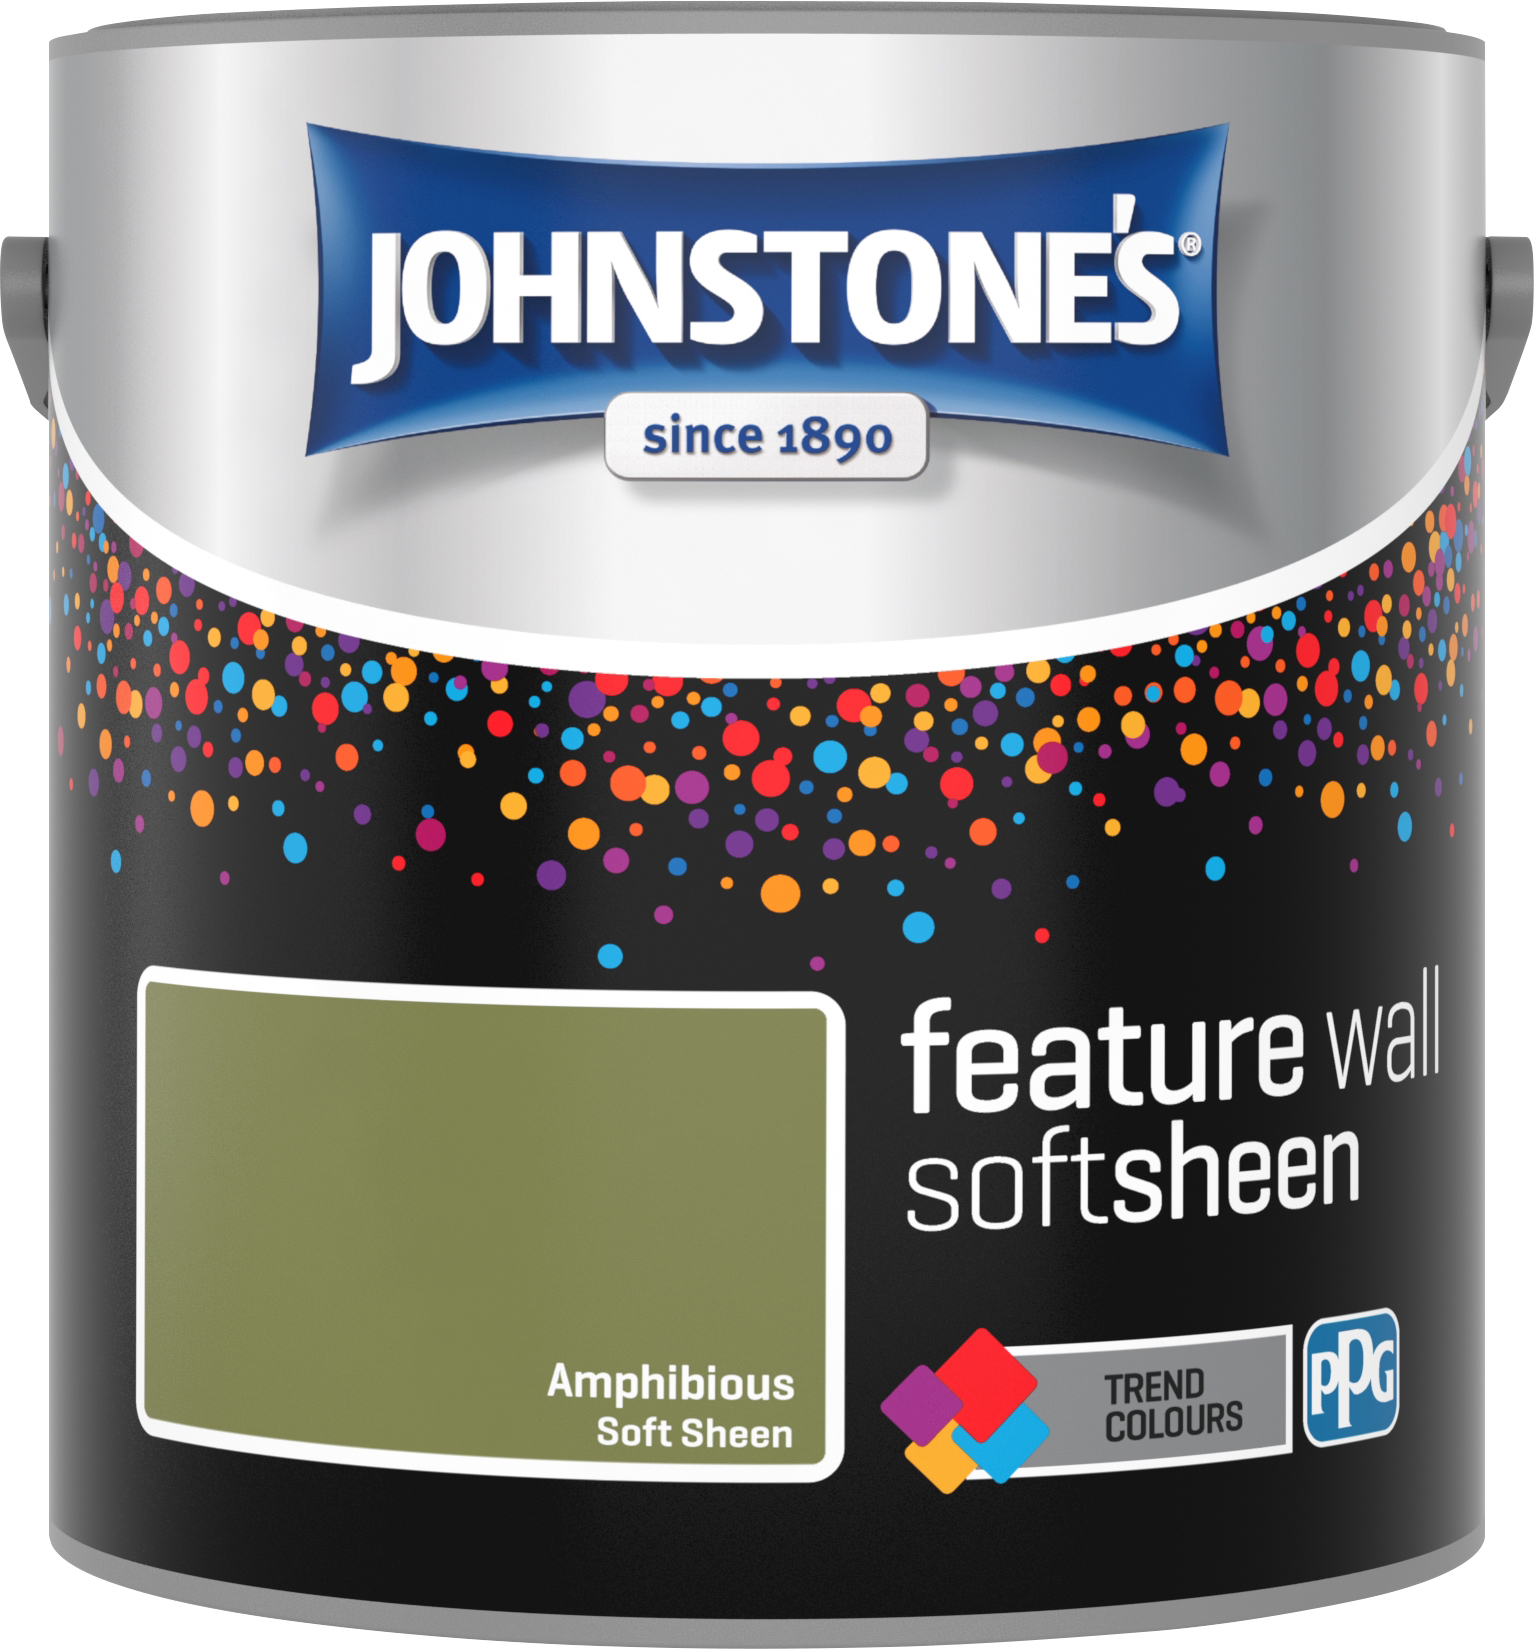 Johnstone's 2.5 Litre Feature Wall Soft Sheen Emulsion Paint - Amphibious